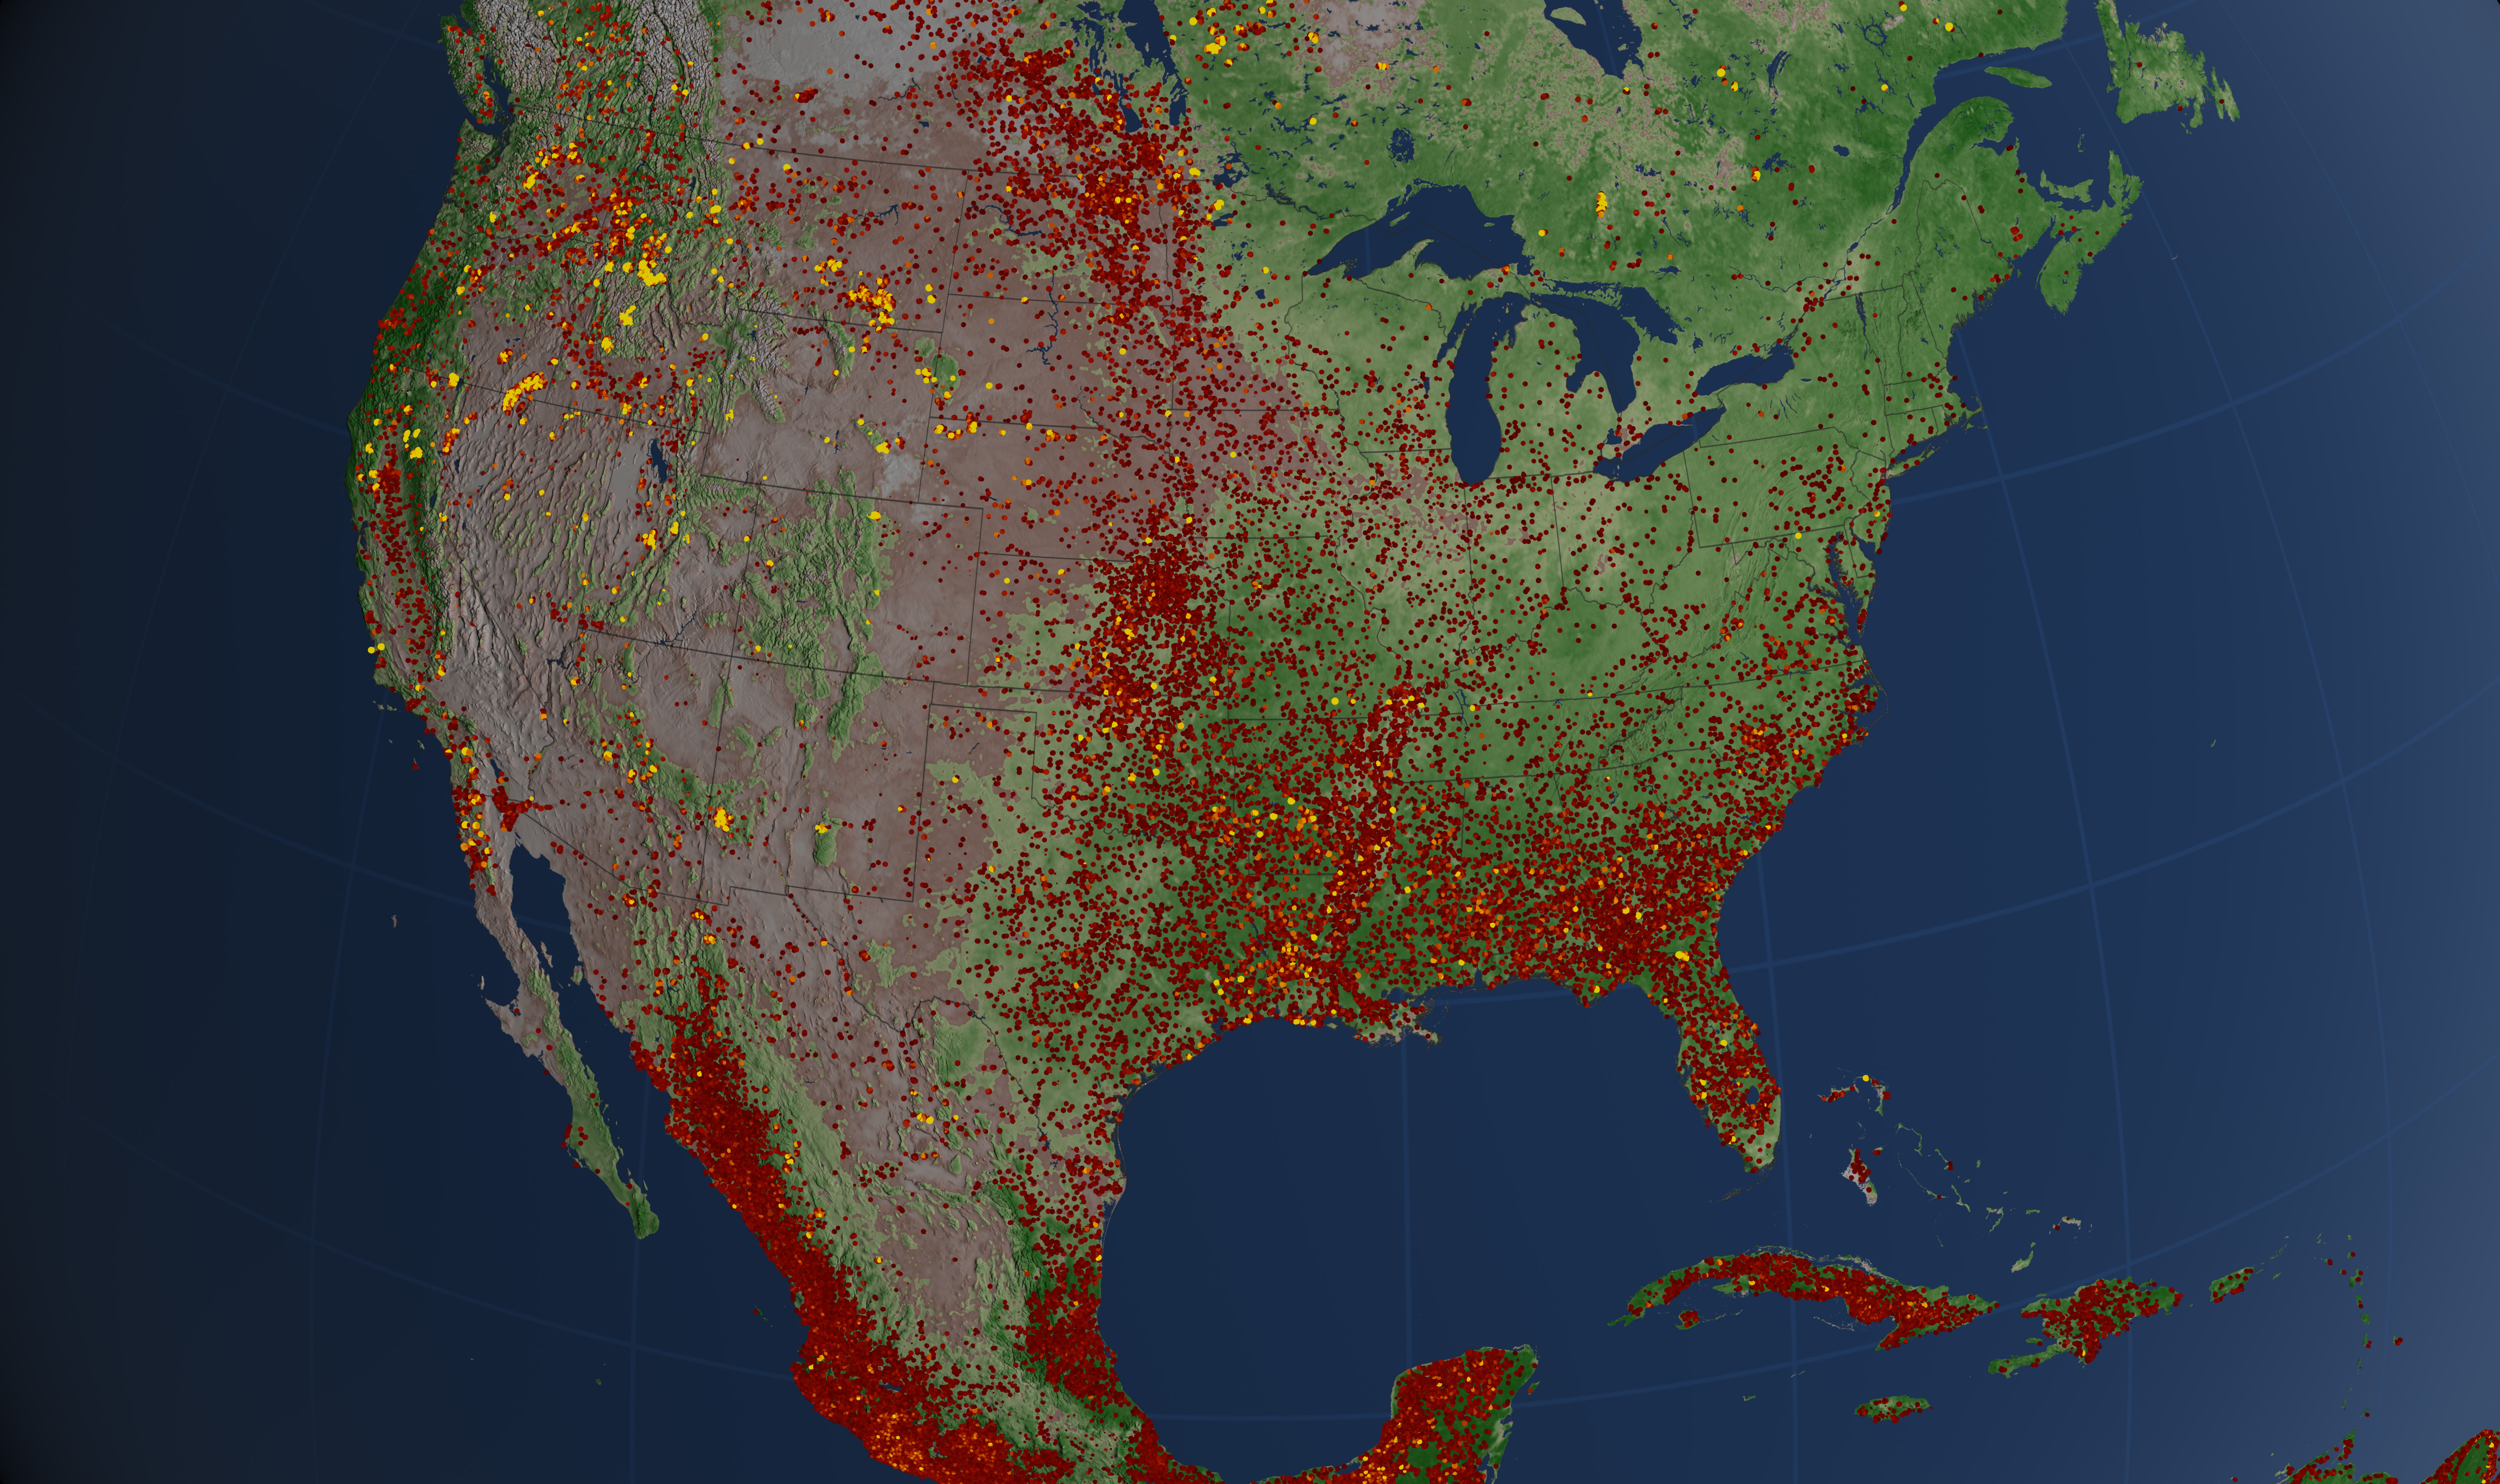 Cumulative wildfires and prescribed burns for contiguous U.S. from January through October 2012